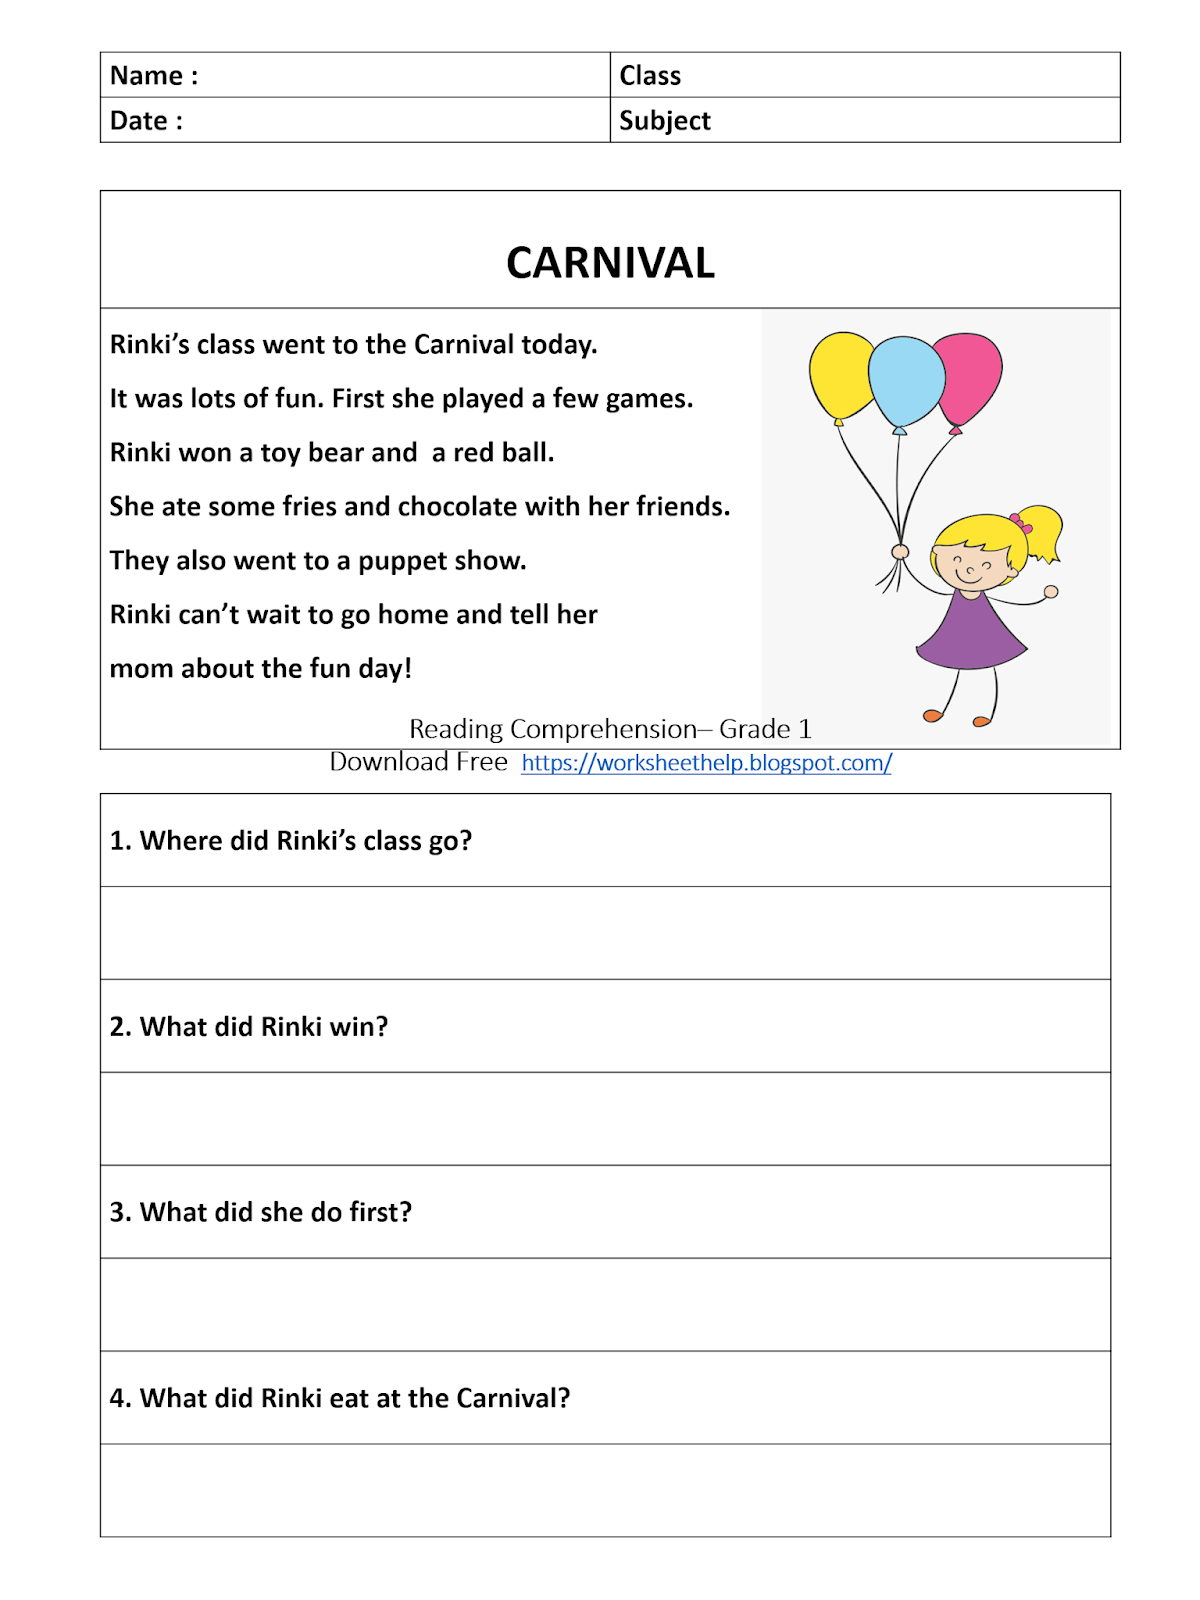 hight resolution of Clipart Creationz: Reading Comprehension Worksheet - Grade 1 - Carnival